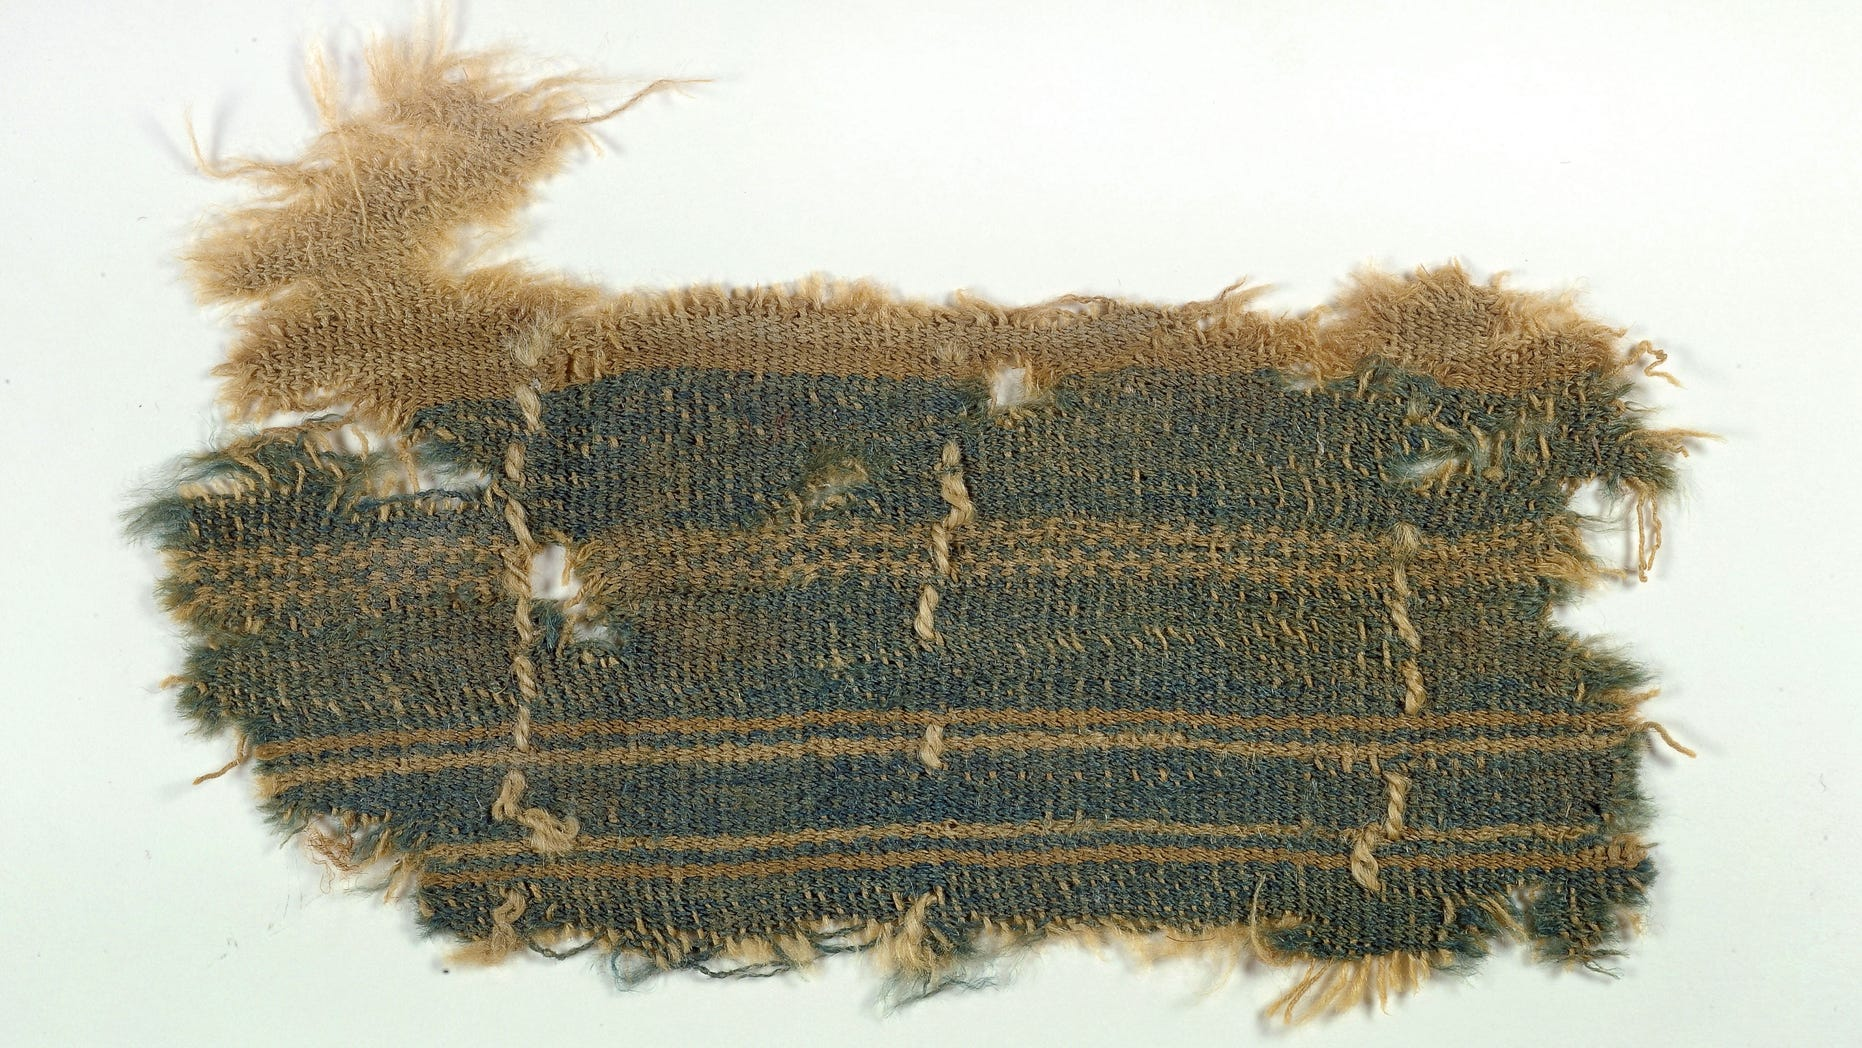 Dec. 31, 2013: A nearly 2,000-year old textile that appears to contain a mysterious blue color described in the Bible, one of the few remnants of the ancient color ever discovered.